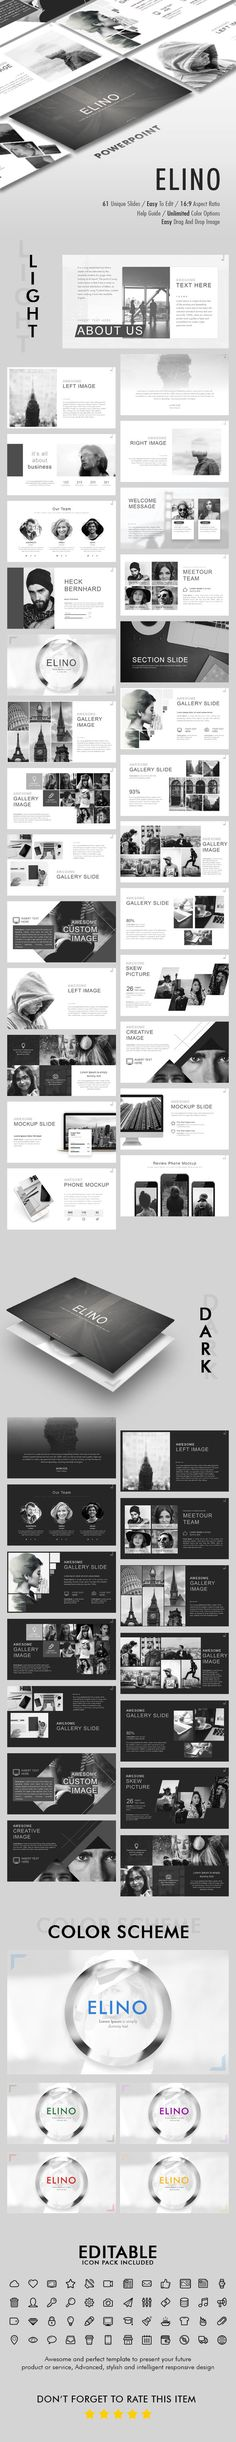 Business Experiences Flyer template, Powerpoint presentation - microsoft white paper template